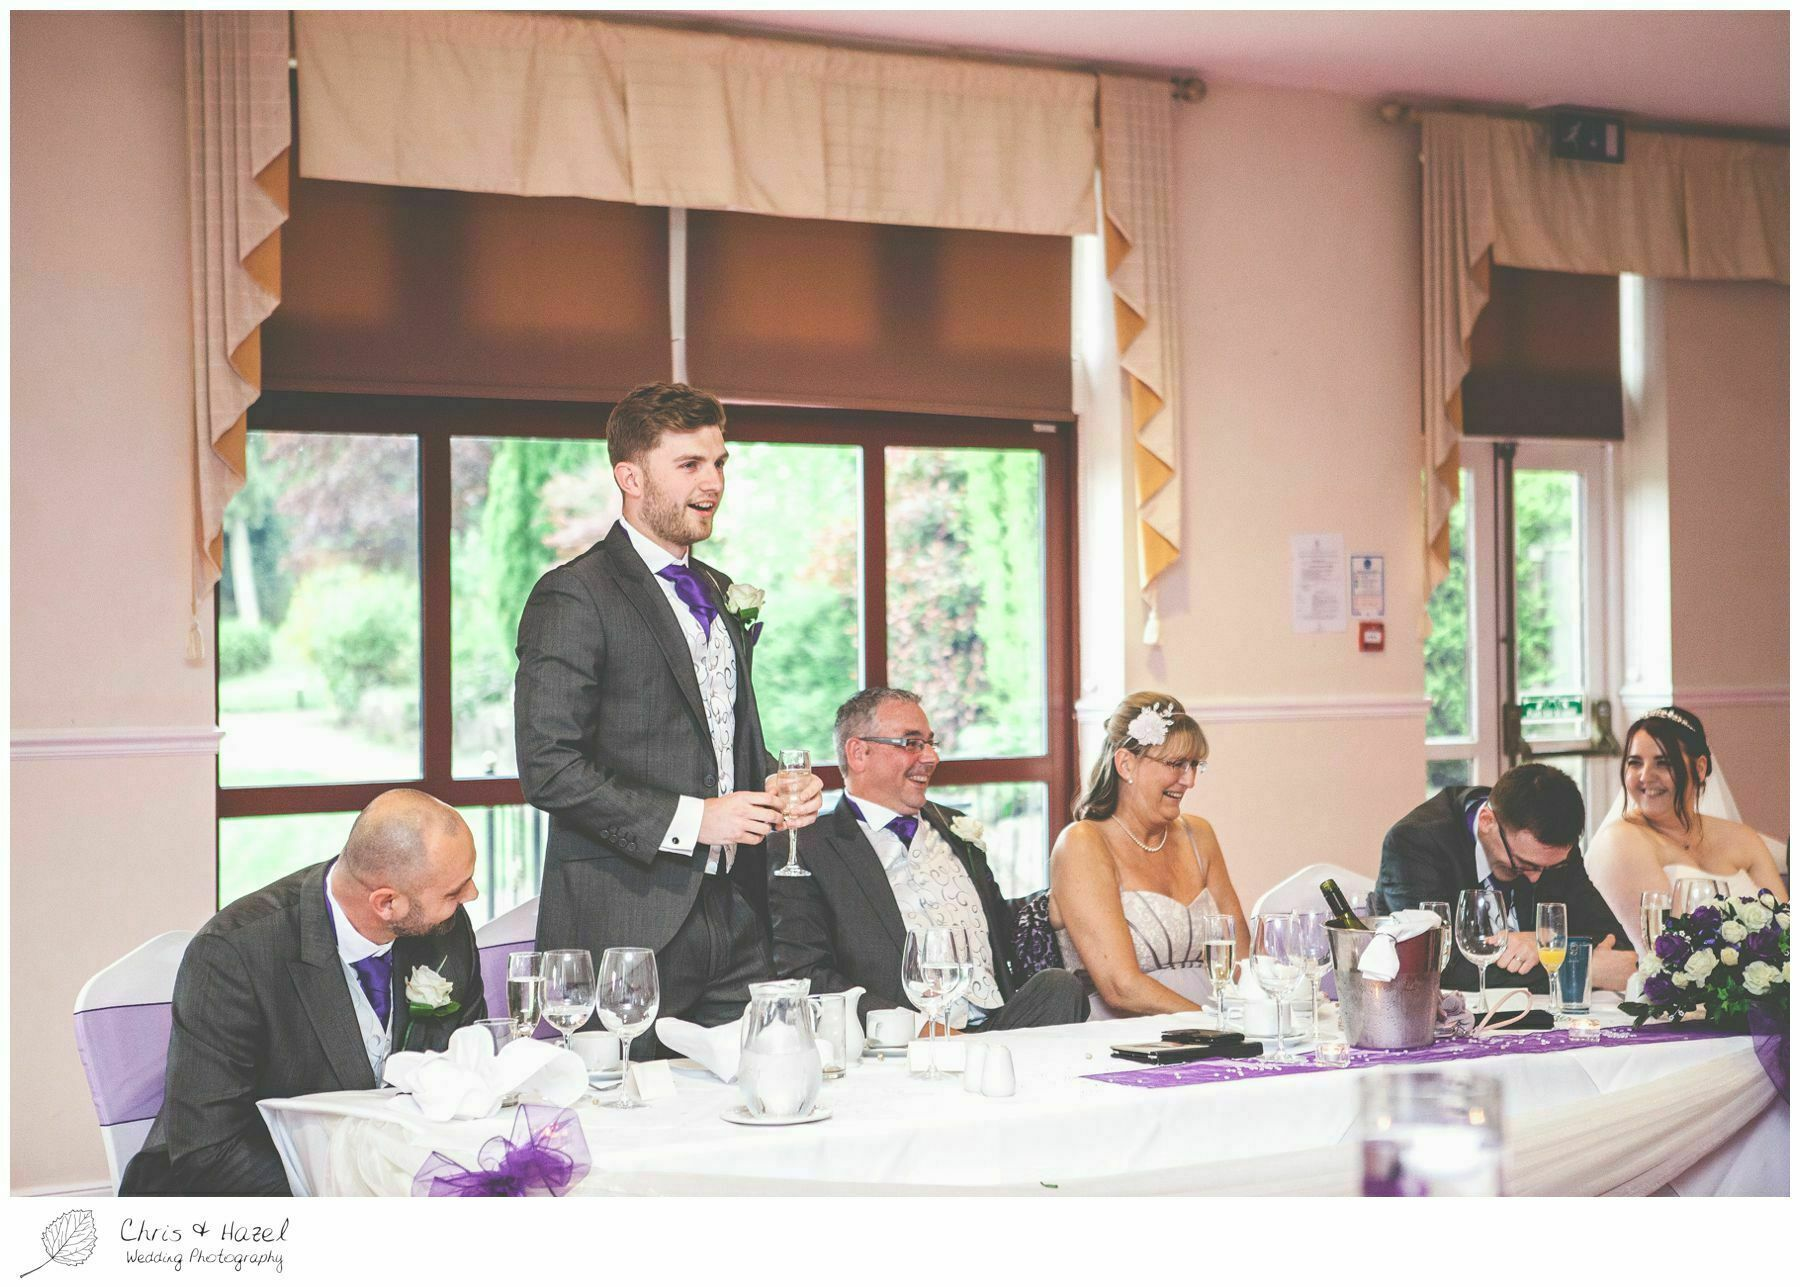 best man wedding speech, bagden hall wedding venue, documentary wedding photography, denny dale, huddersfield, Wedding Photographer, Bagden Hall, Wedding Photography, Chris and Hazel Wedding Photography, Alex tomenson, Vicky hunt